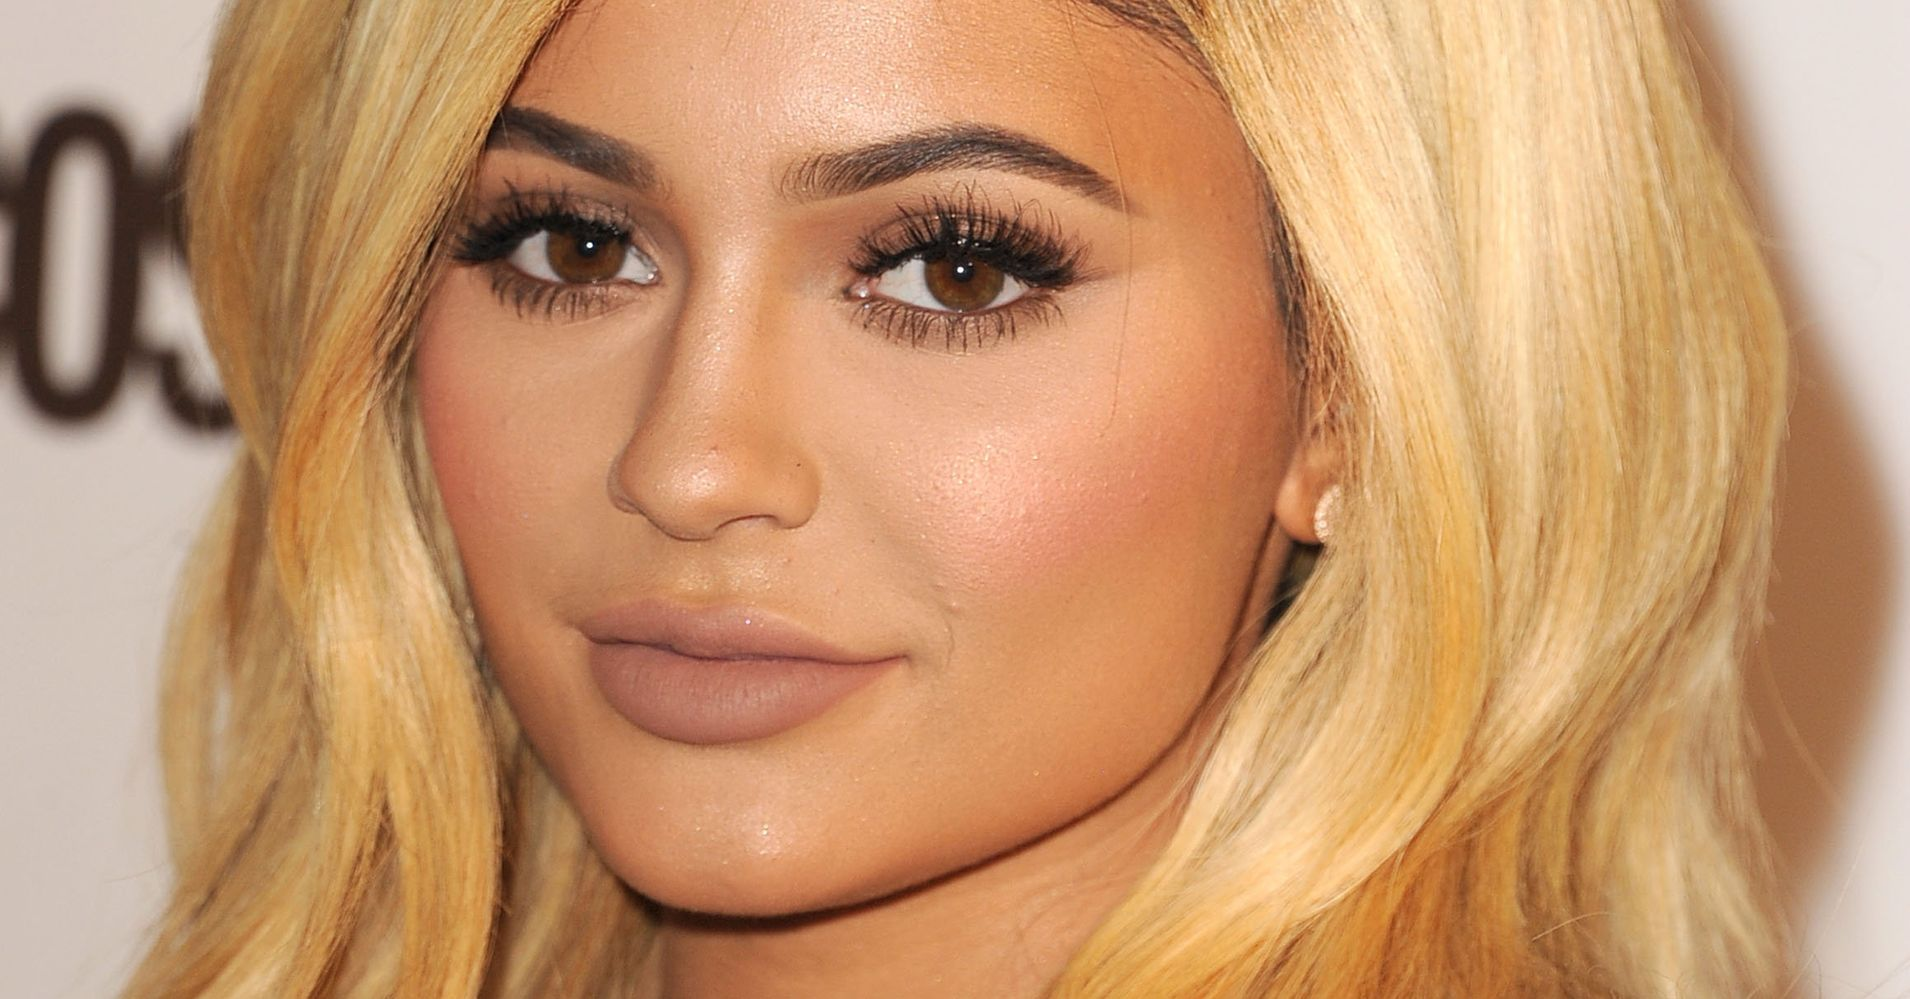 Hairstyles Kylie Jenner: Kylie Jenner Debuts A Chic New Short Haircut